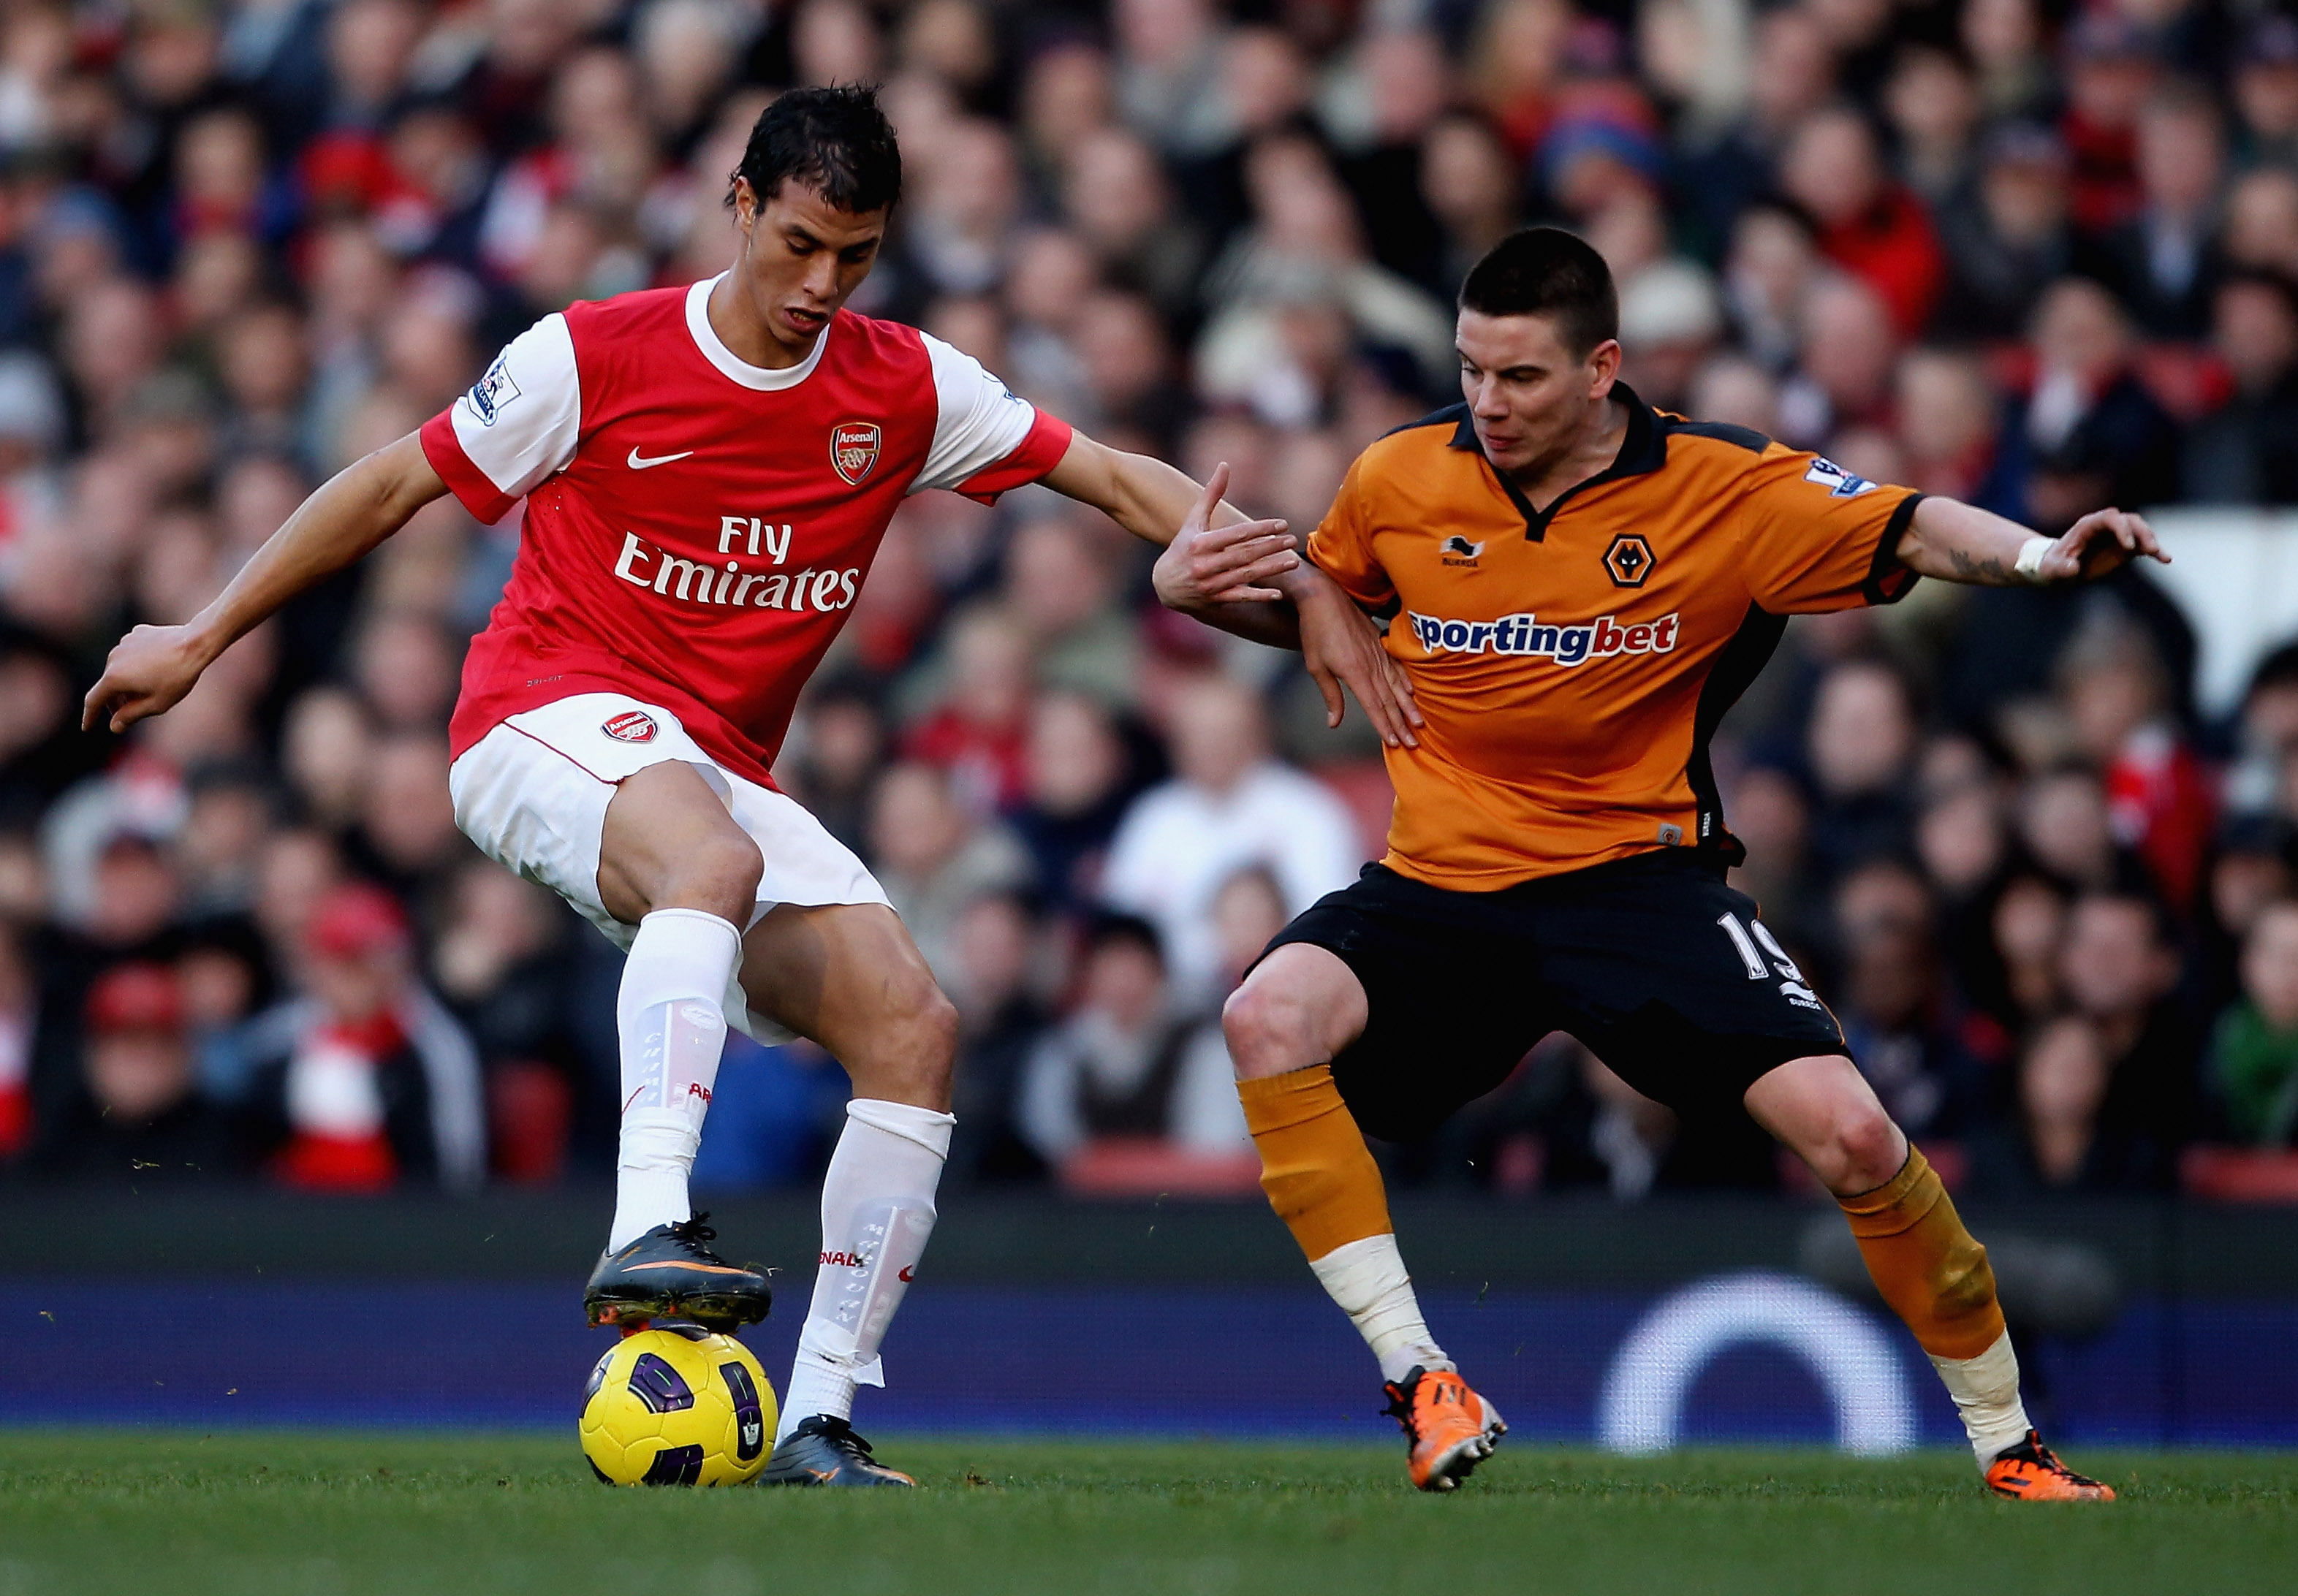 LONDON, ENGLAND - FEBRUARY 12:  Adam Hammill of Wolves (R) in action with Marouane Chamakh of Arsenal during the Barclays Premier League match between Arsenal and Wolverhampton Wanderers on February 12, 2011 in London, England.  (Photo by Scott Heavey/Get